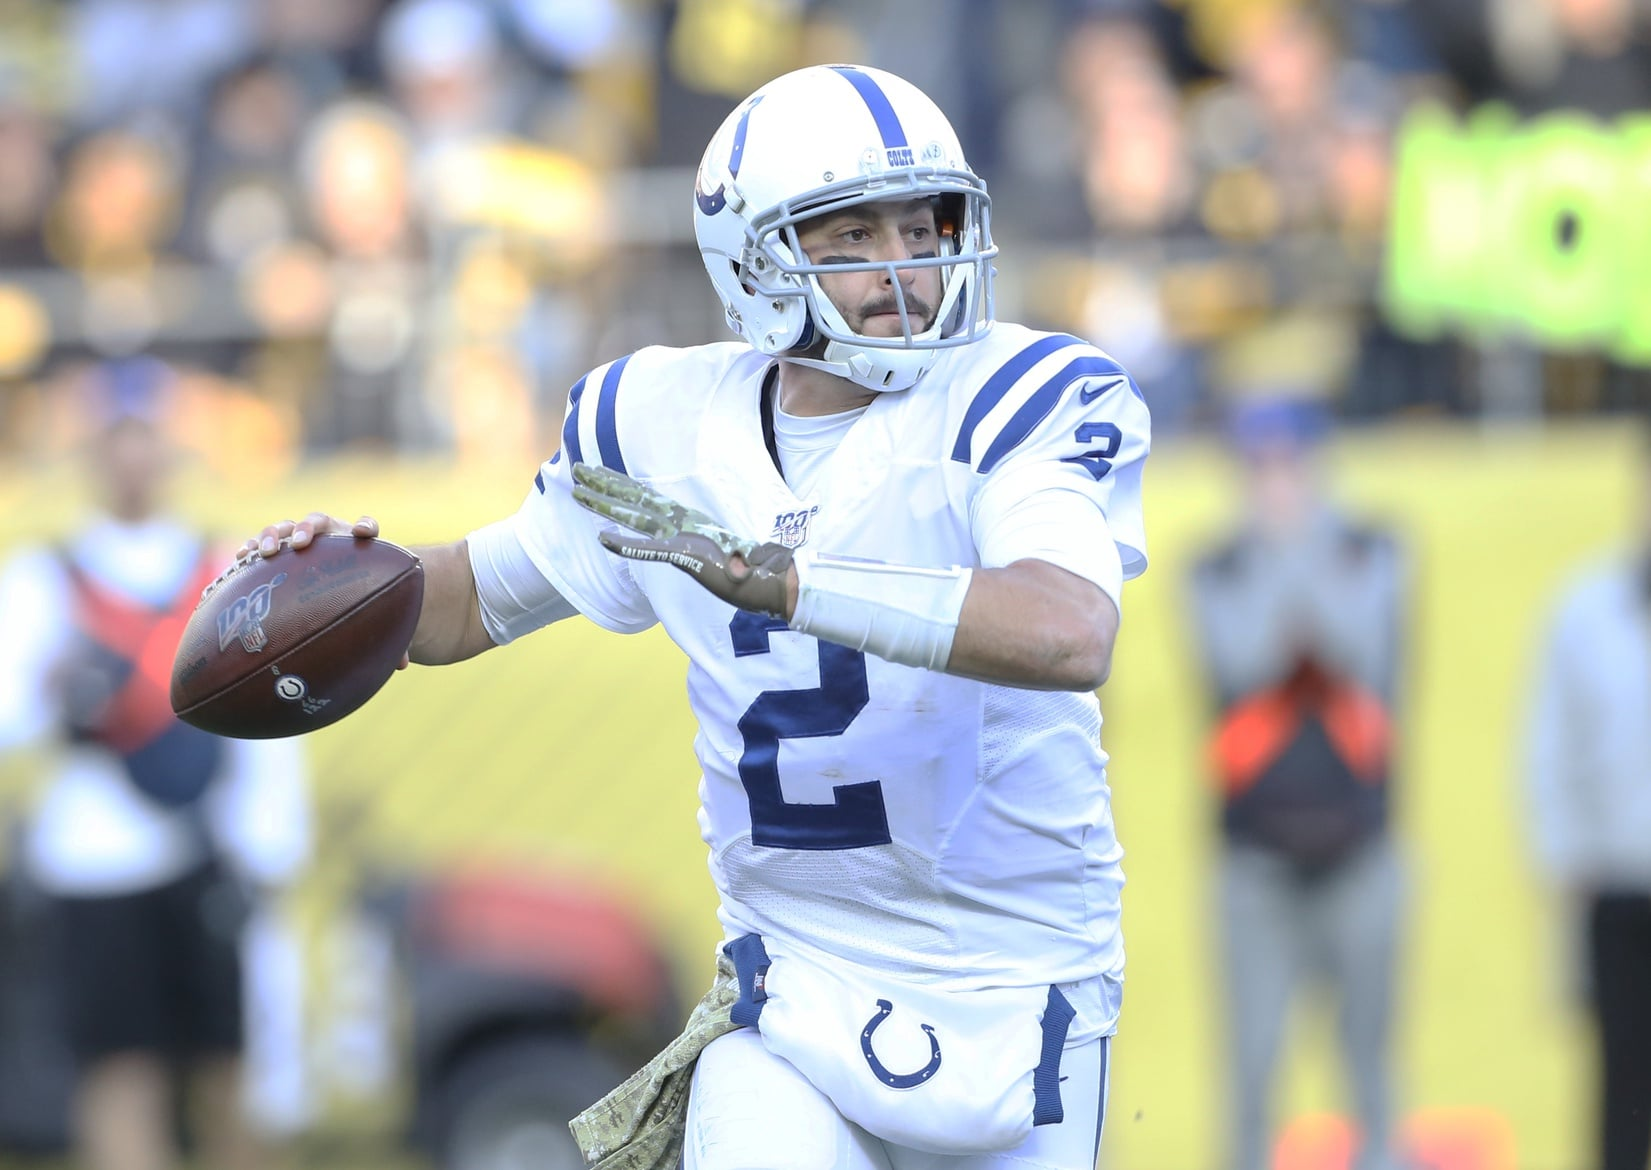 colts vs. dolphins betting prediction, odds, picks